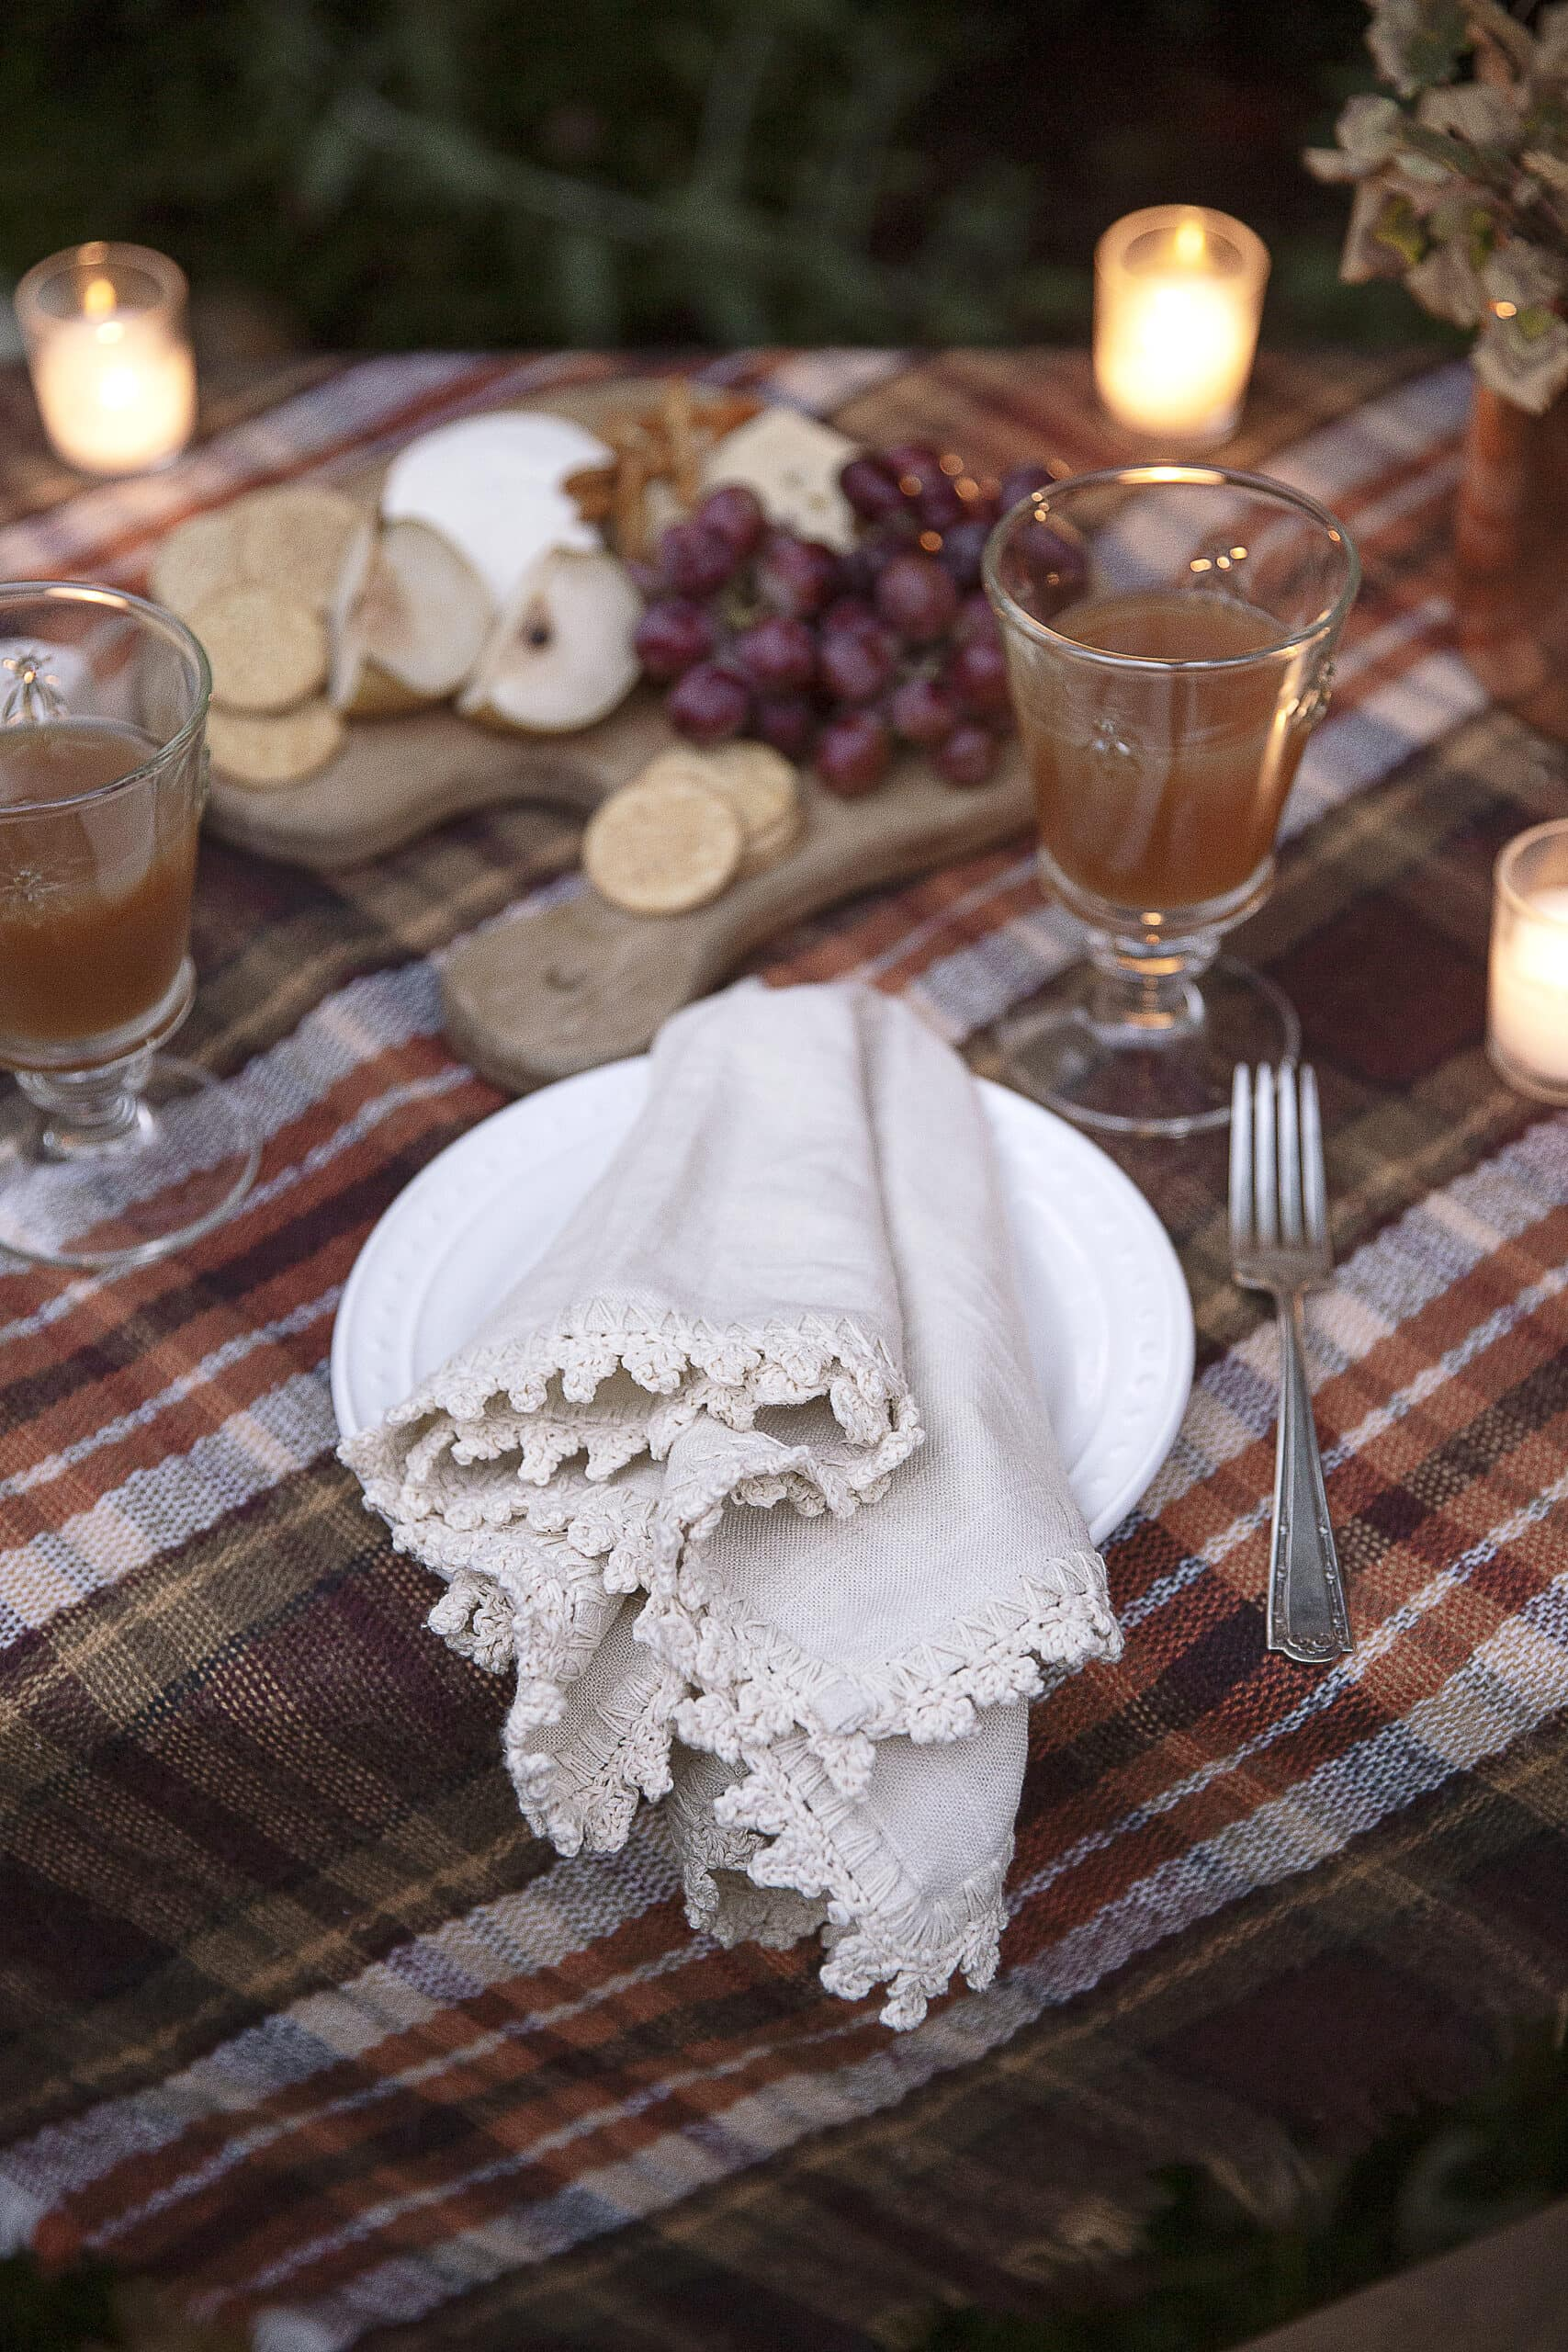 crochet edge napkin and simple place setting